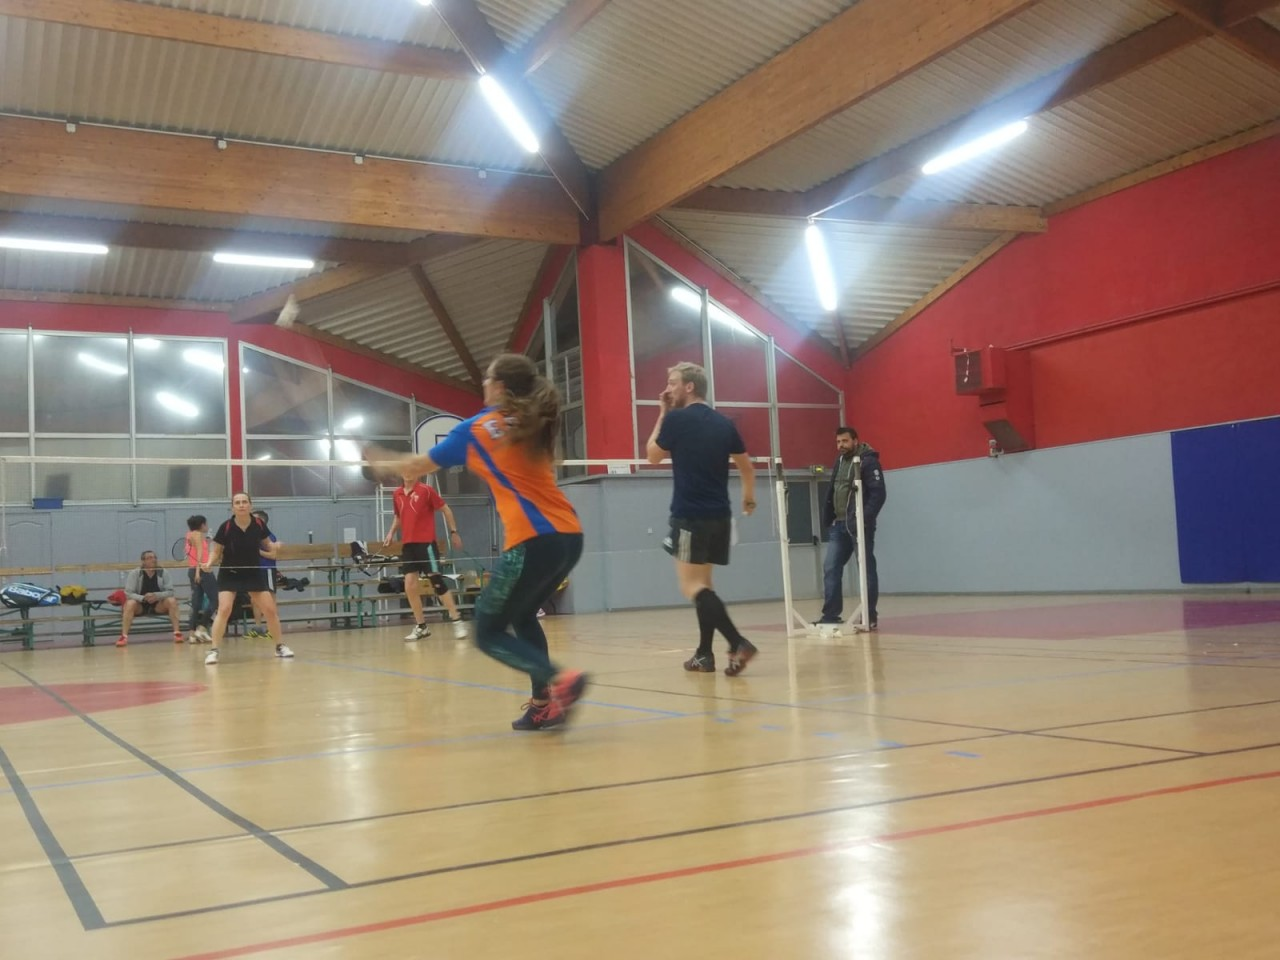 Club Badminton de Peypin contre Bouc-bel-air